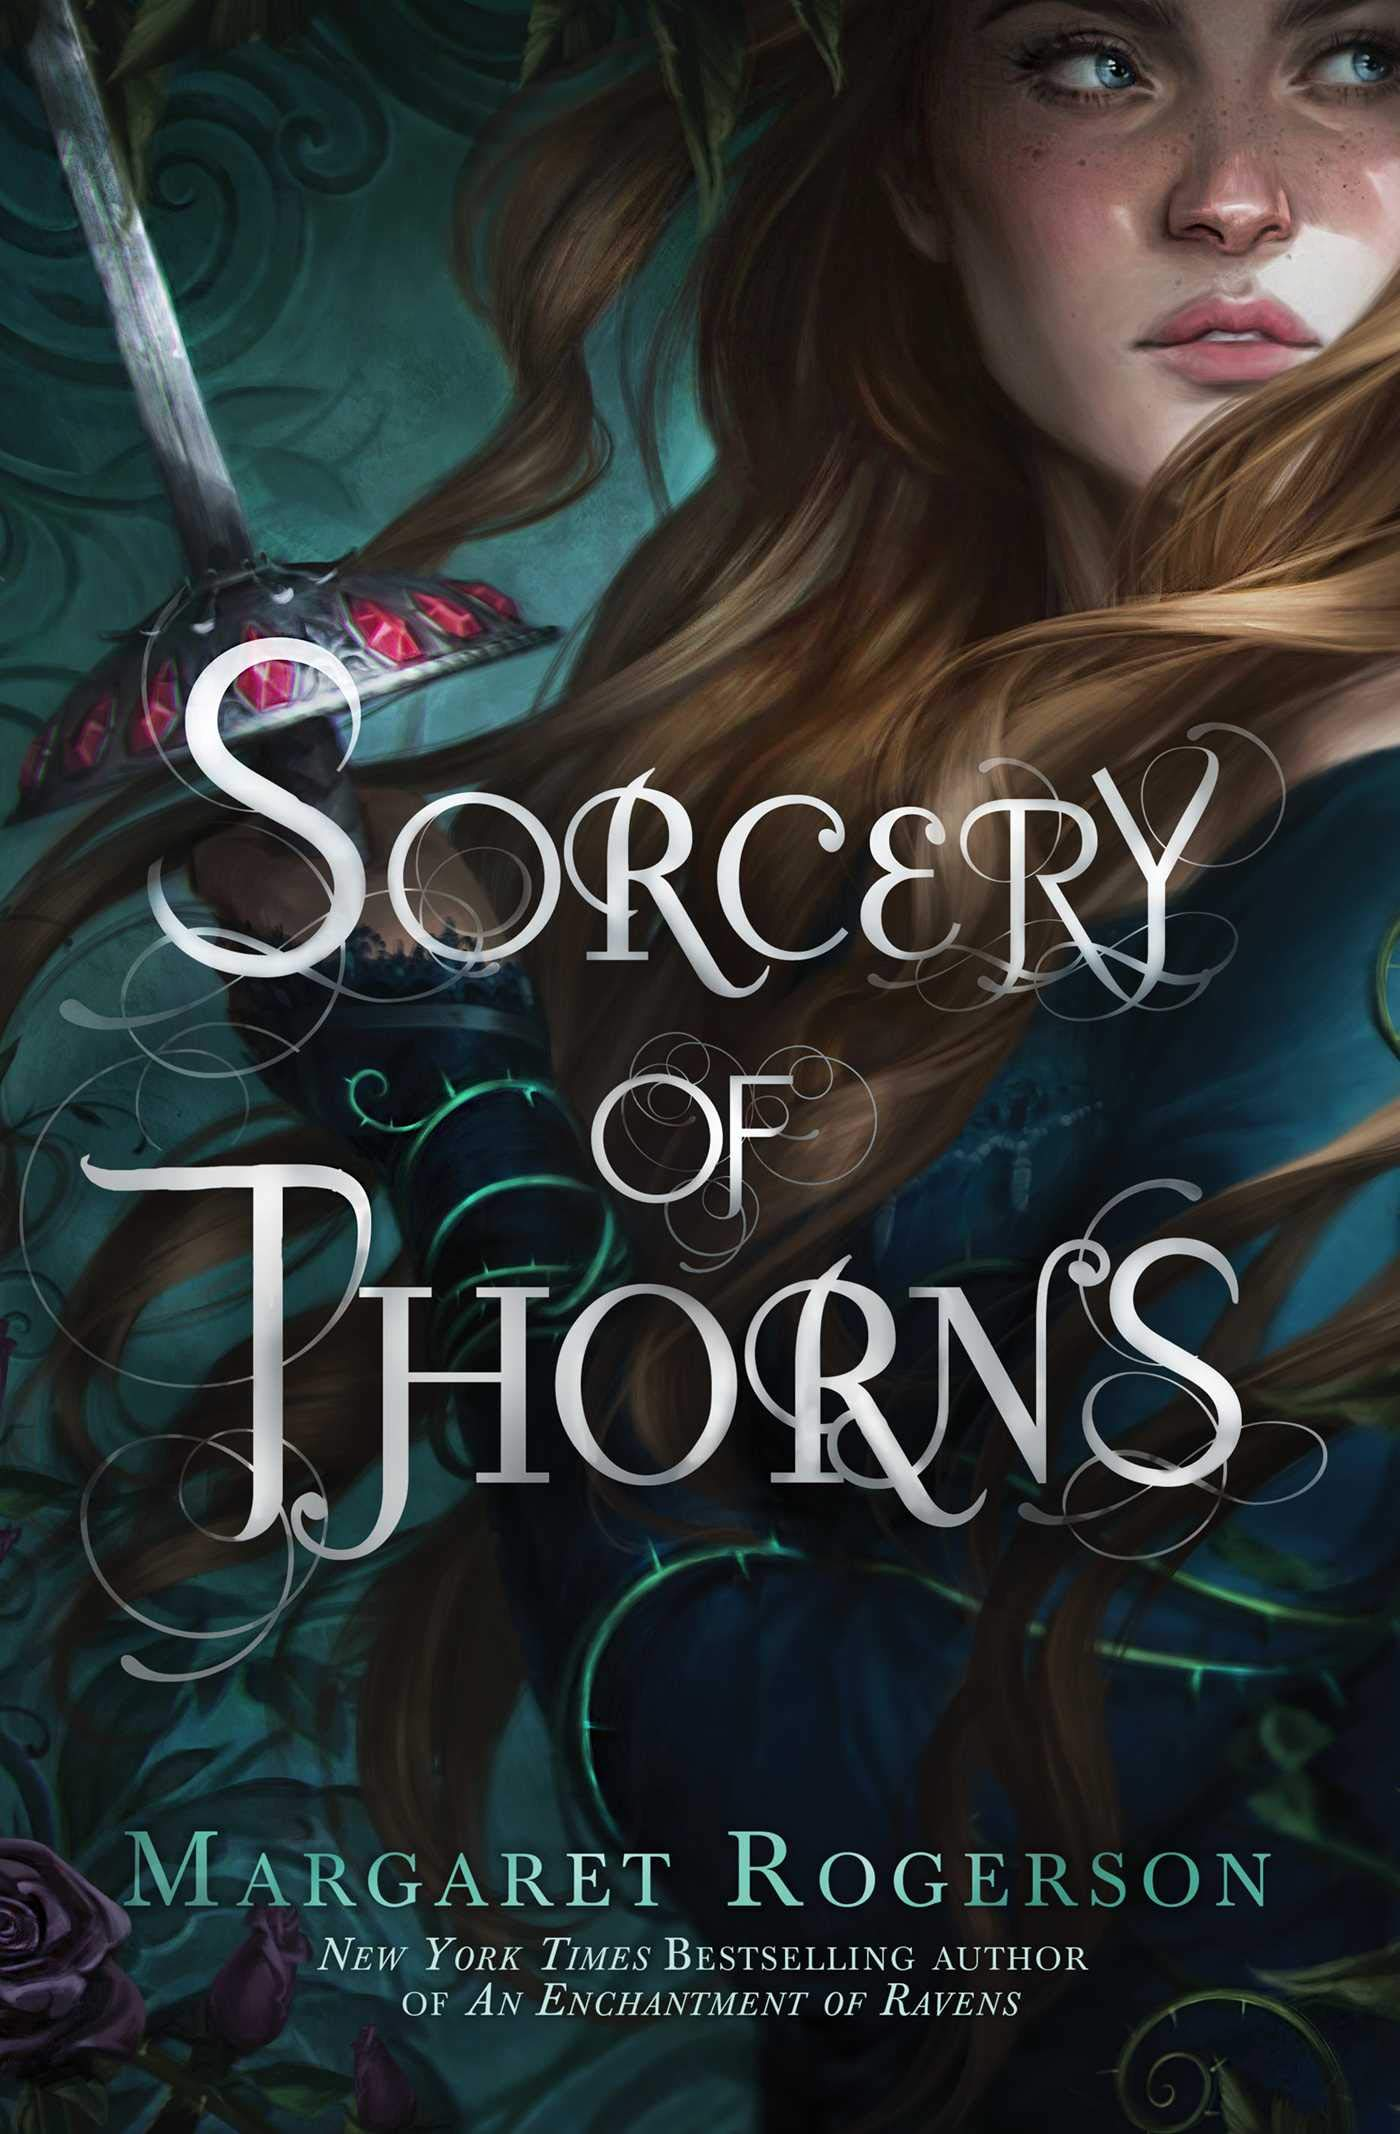 Sorcery of Thorns: Amazon.co.uk: Rogerson, Margaret: Books